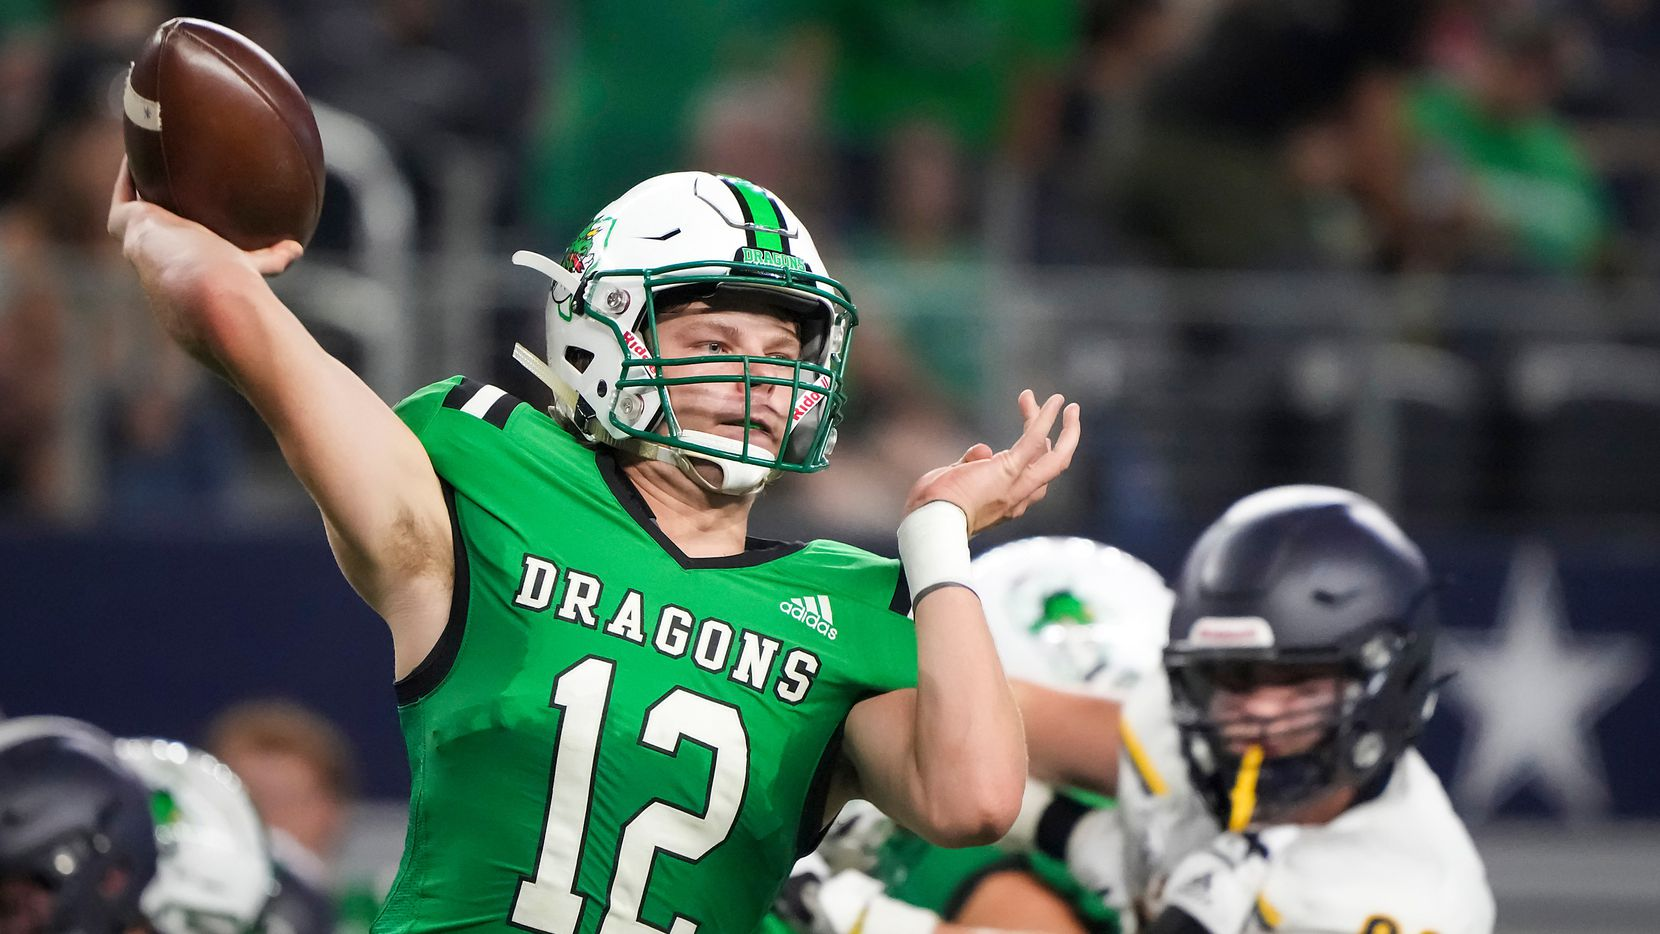 Southlake Carroll quarterback Kaden Anderson (12) throws a pass during the first half of a high school football game against Highland Park at AT&T Stadium on Thursday, Aug. 26, 2021, in Arlington. (Smiley N. Pool/The Dallas Morning News)